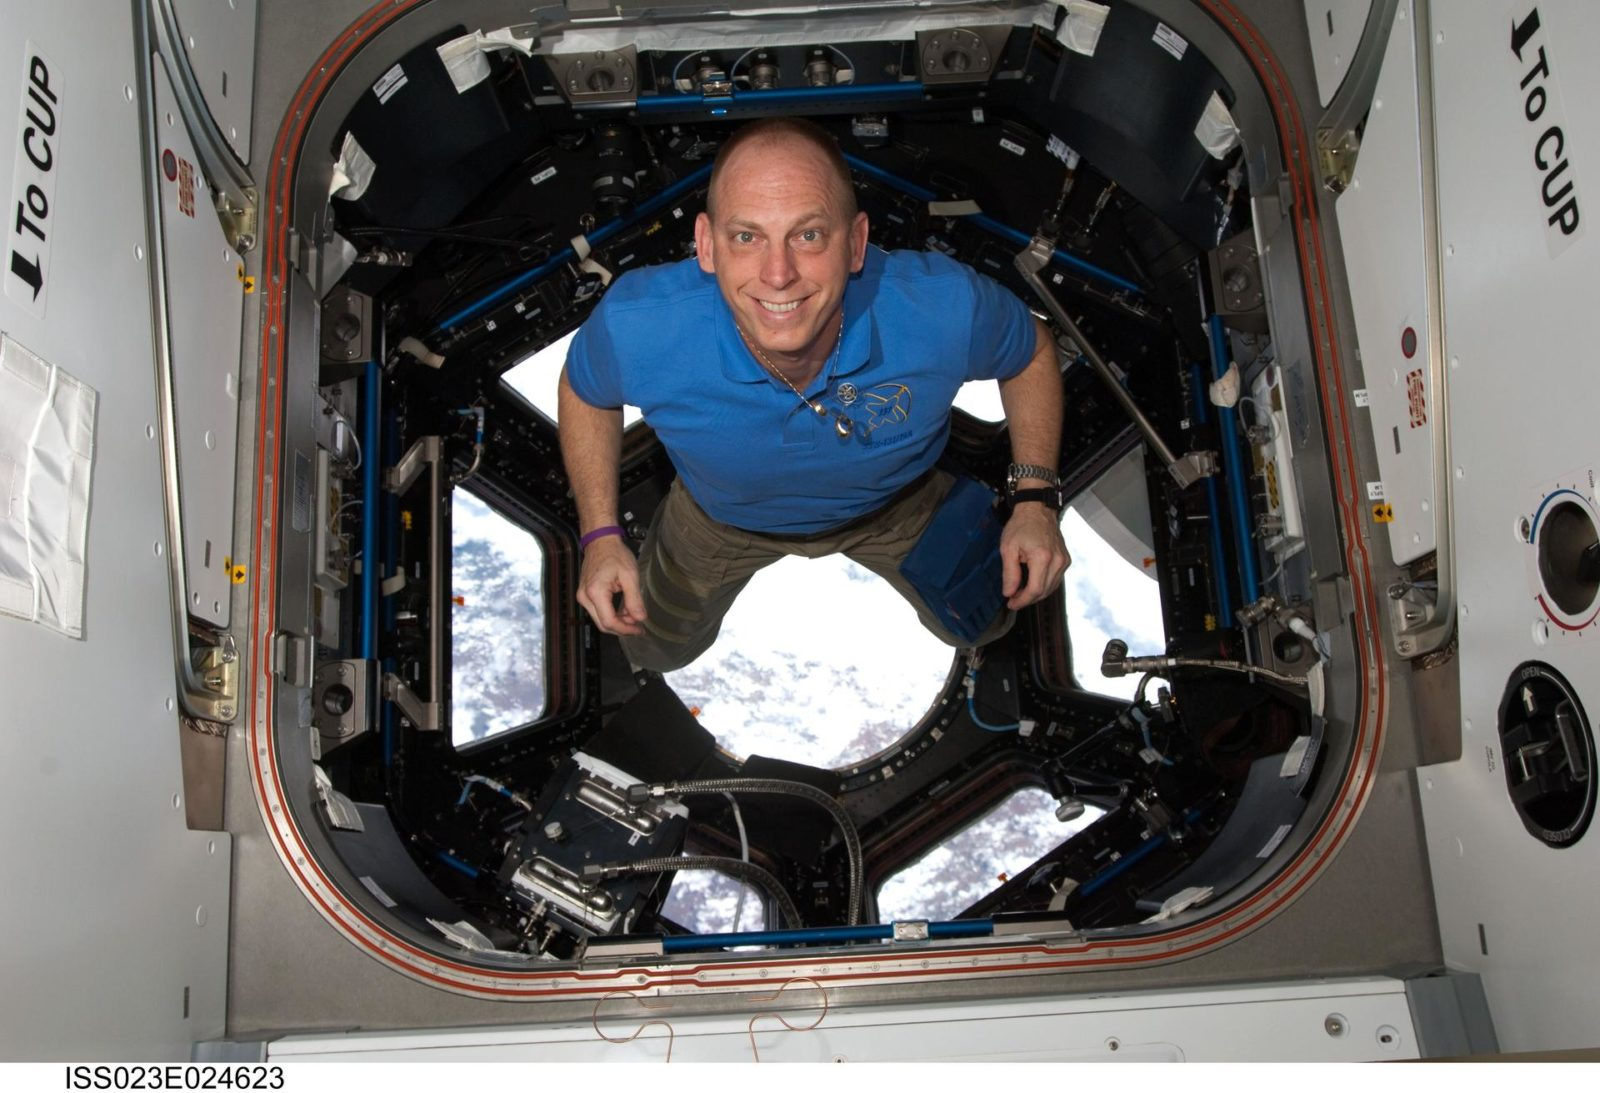 Anderson in the Cupola